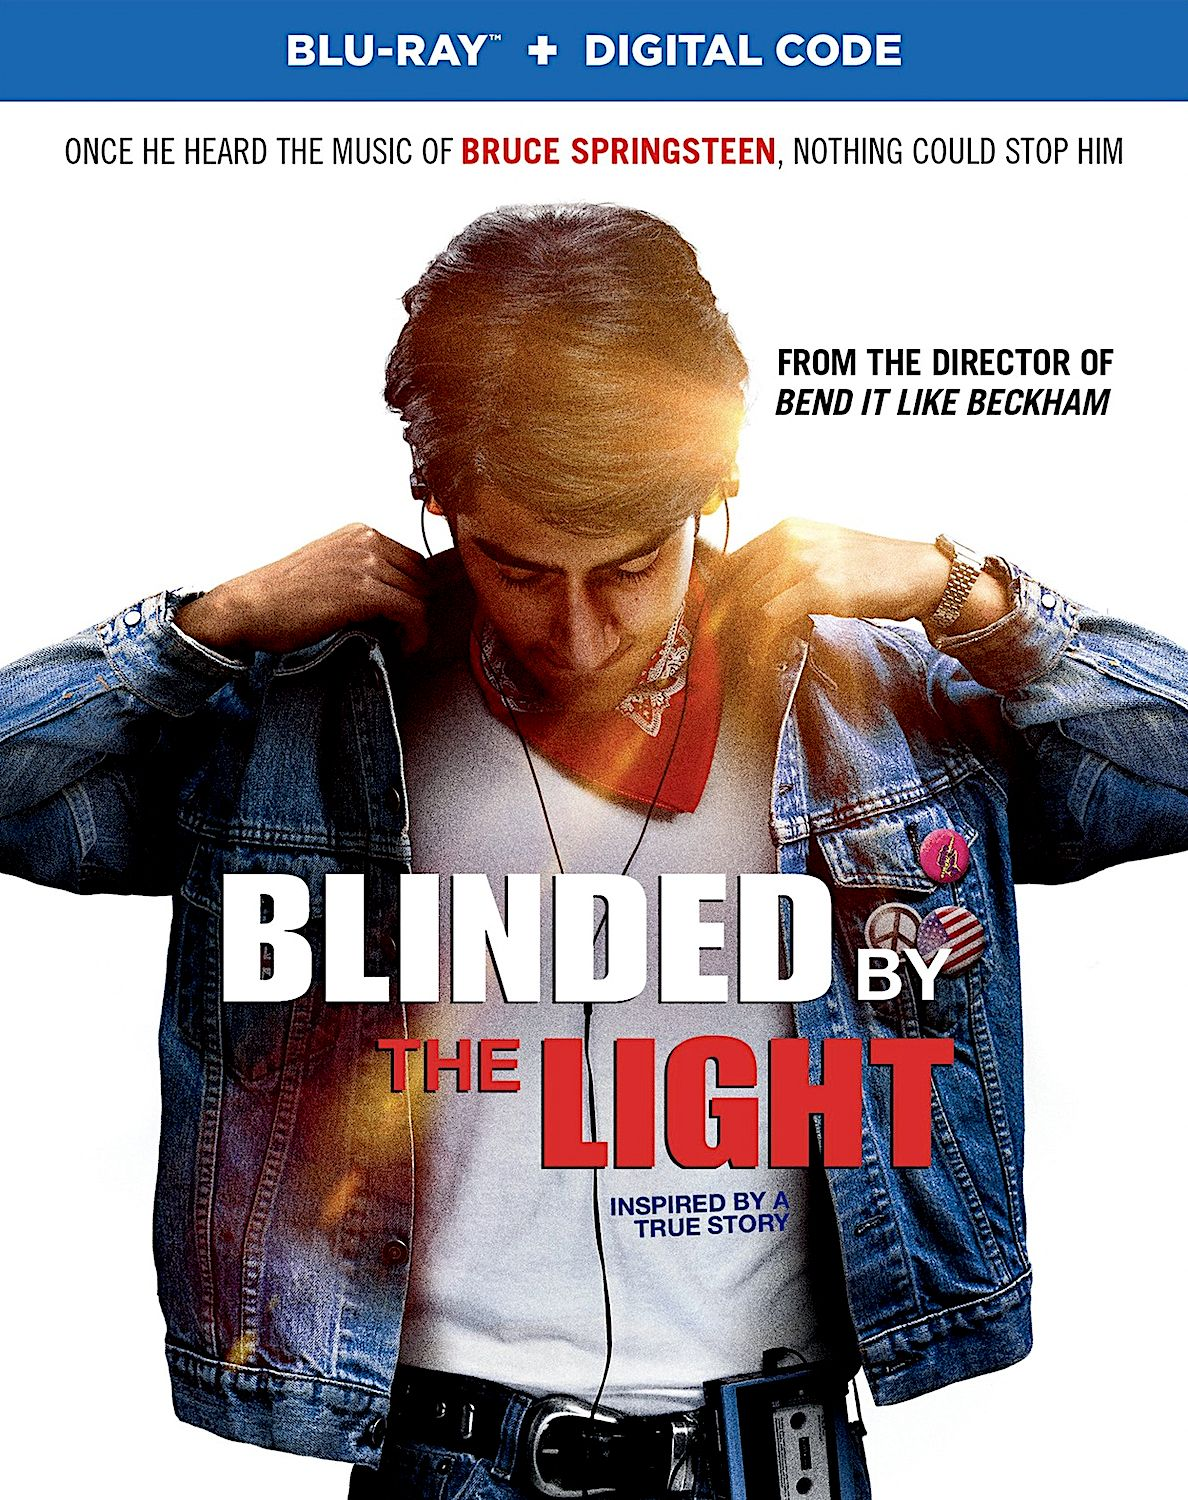 Blinded By The Light Blu Ray Warner Blinded By The Light Bruce Springsteen Songs Blu Ray